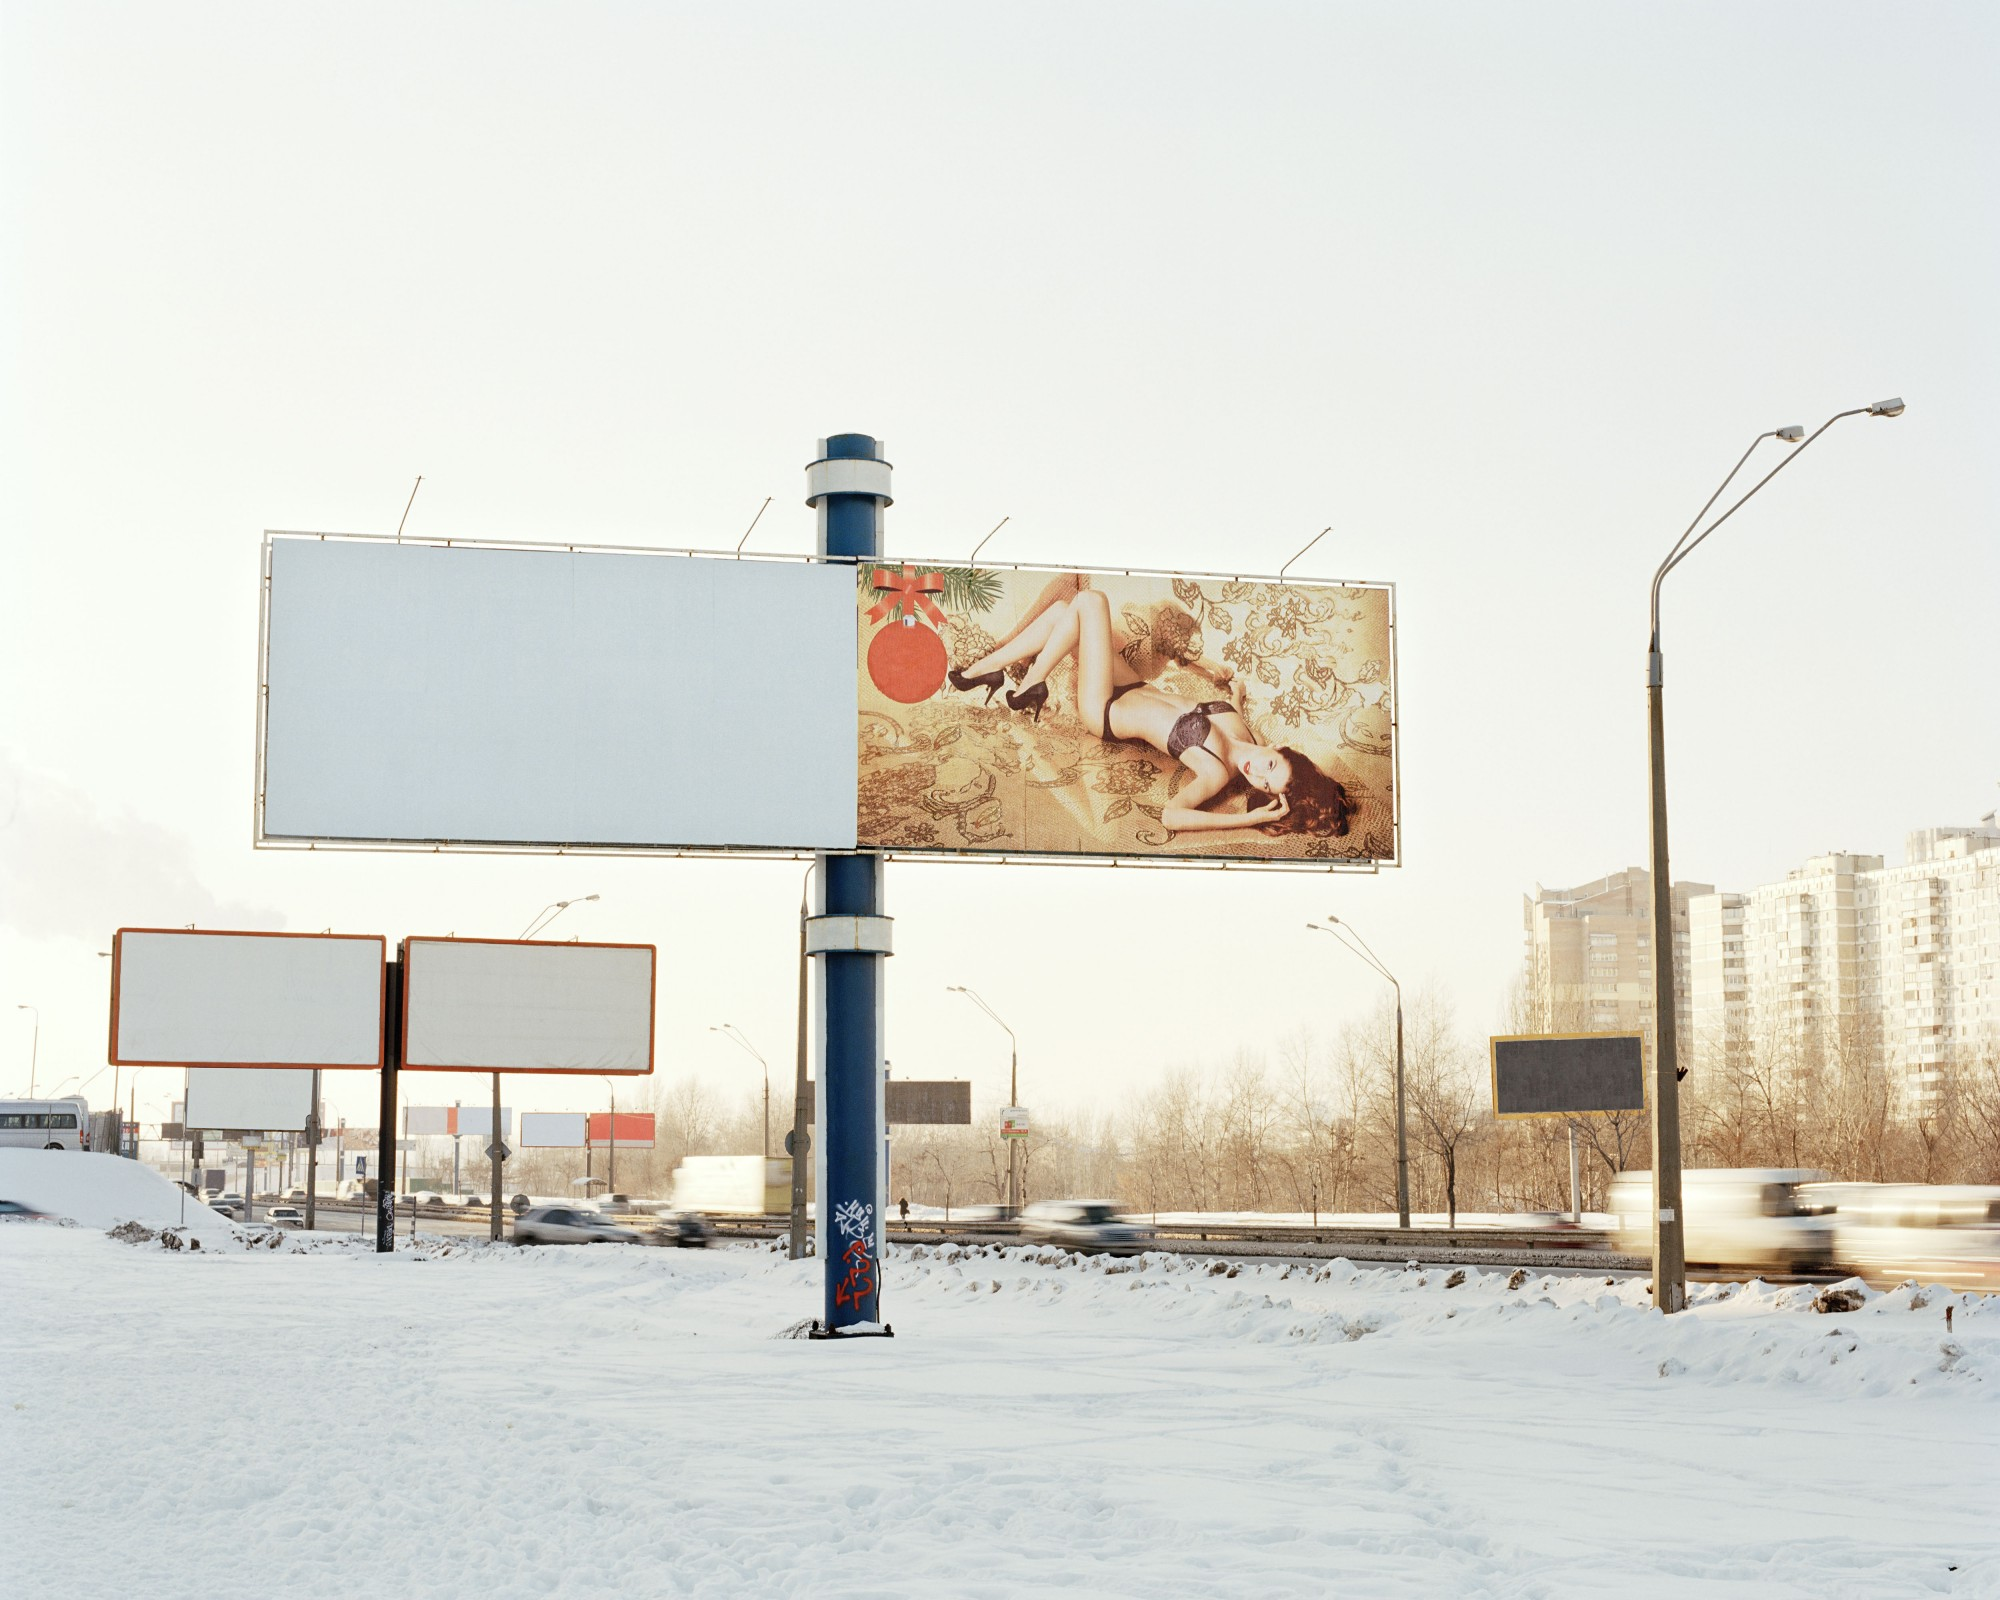 Advertisement. From <em>Ekaterina</em> (2012) by Romain Mader